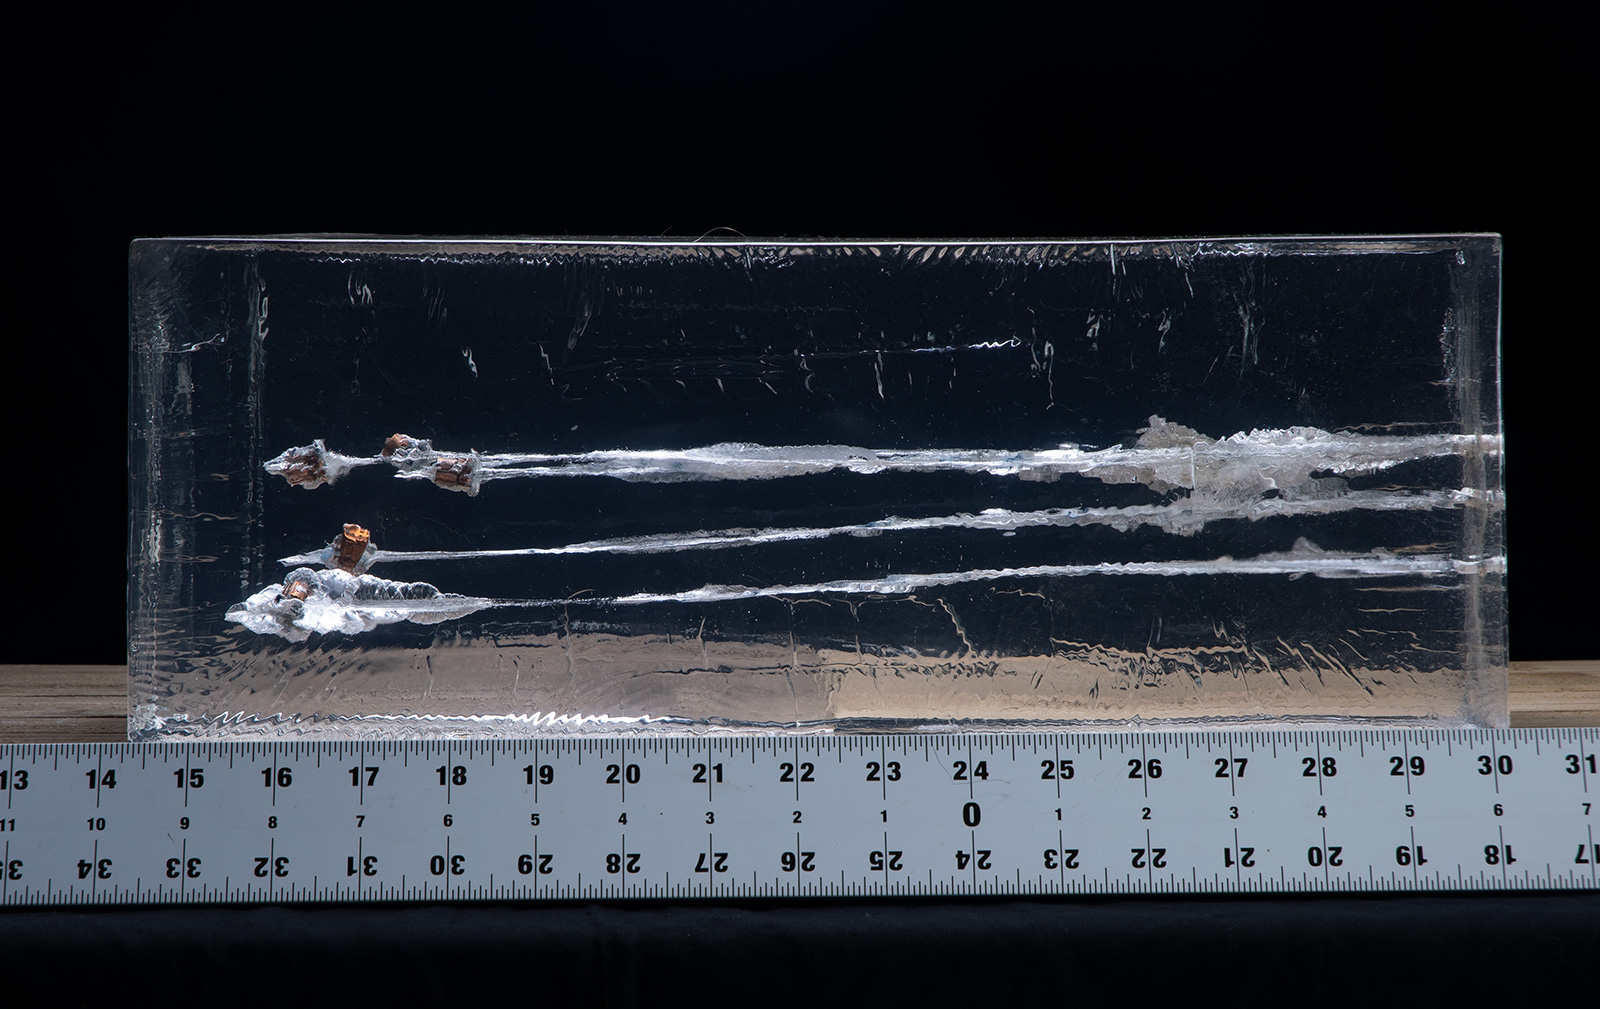 38 special gel testing results with fired bullets into gelatin